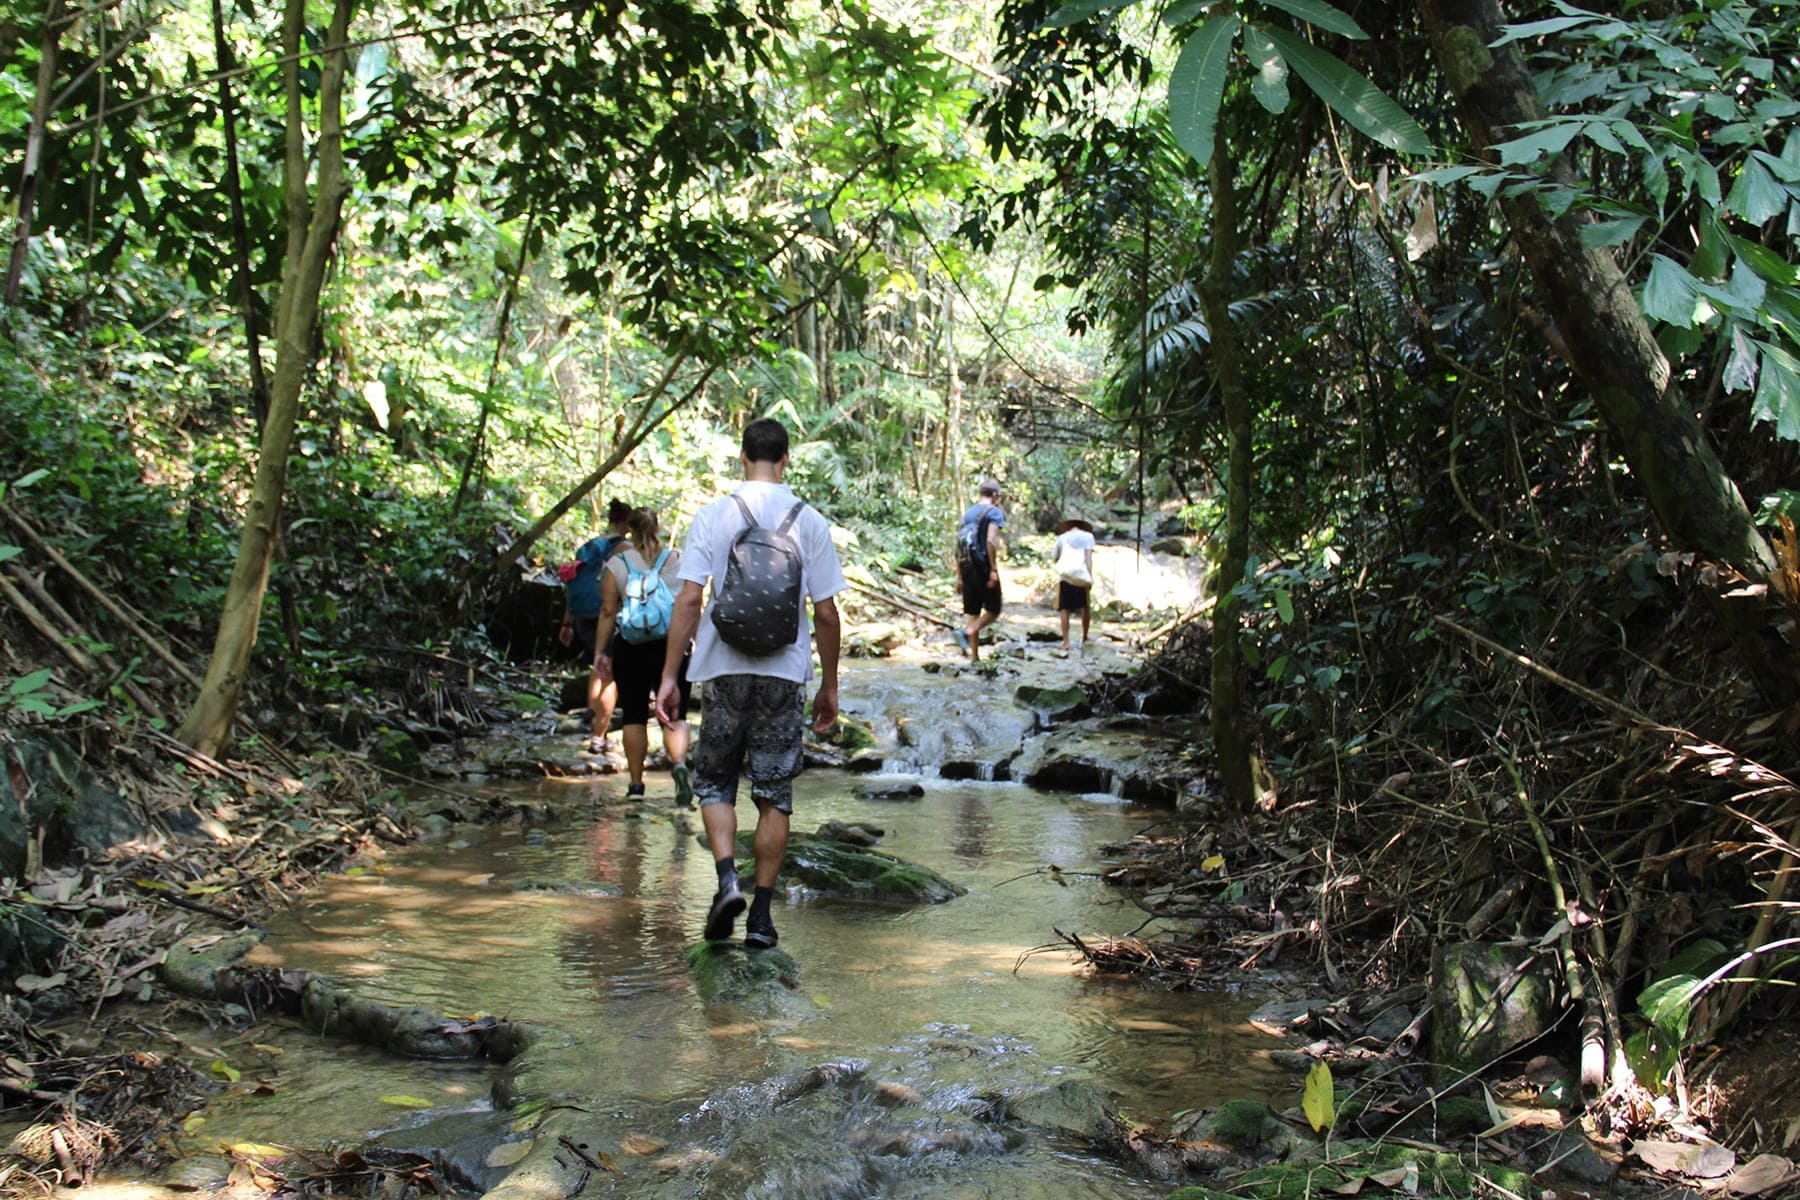 Hundred Waterfall trek in Nong Khiaw, Laos